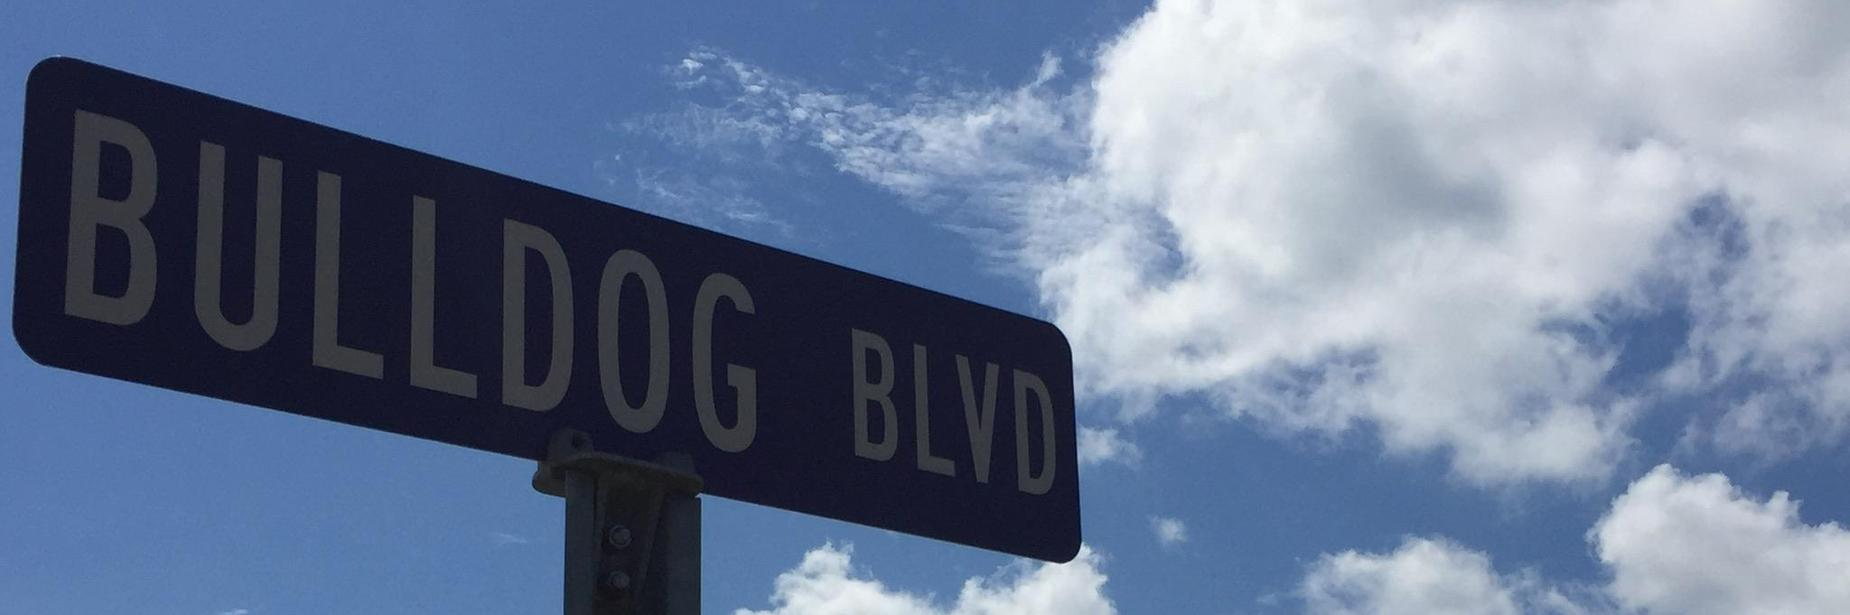 bulldog blvd road sign